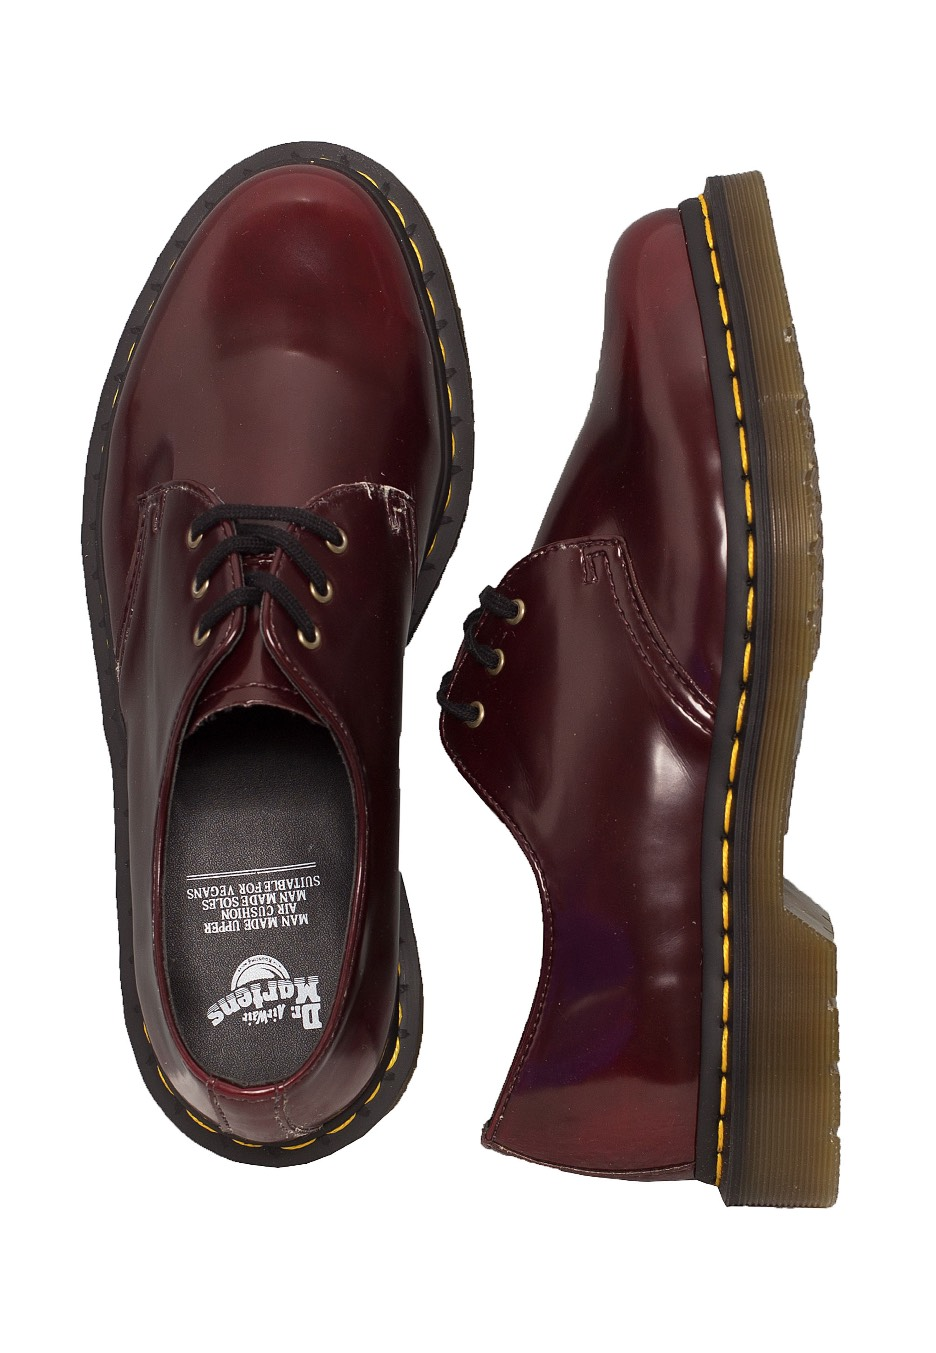 599c2352343 Dr. Martens - Vegan Cherry 3 Eye Boot - Girl Shoes - Impericon.com AU